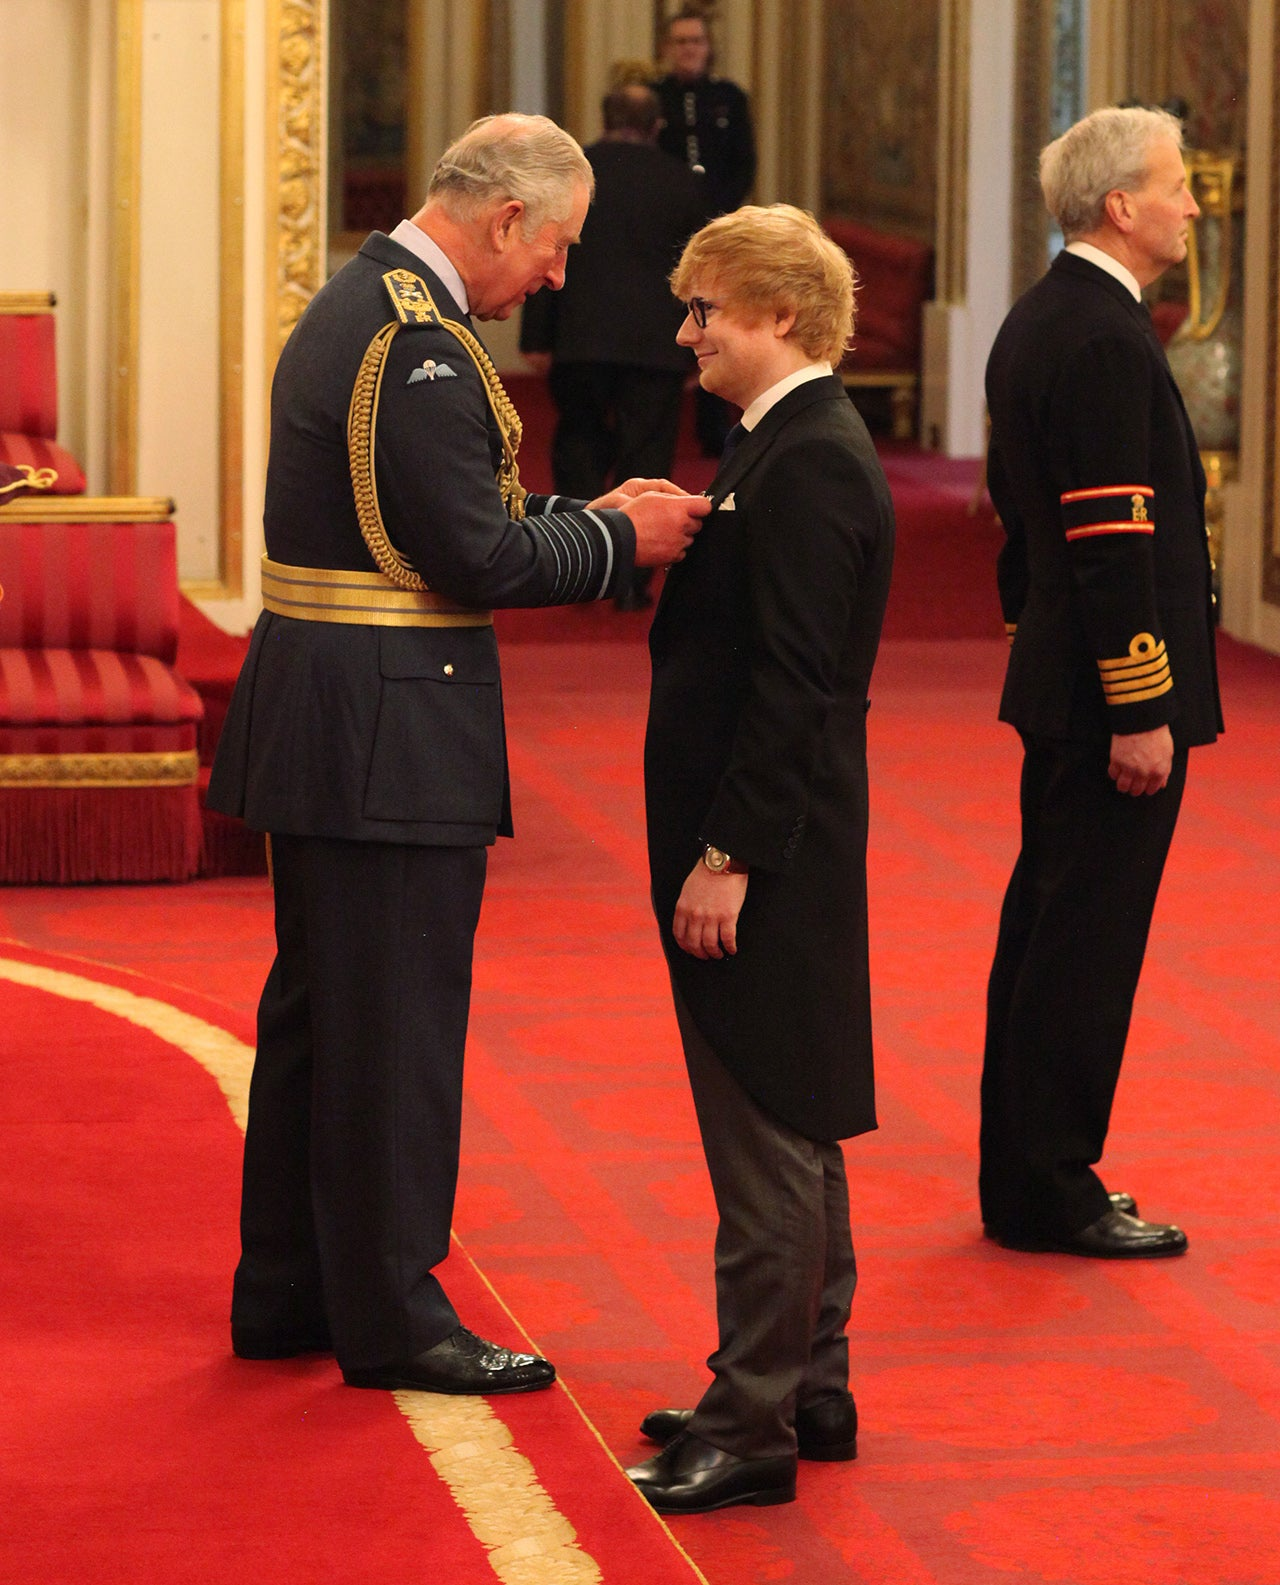 Ed Sheeran receives an MBE from Prince Charles at Buckingham Palace